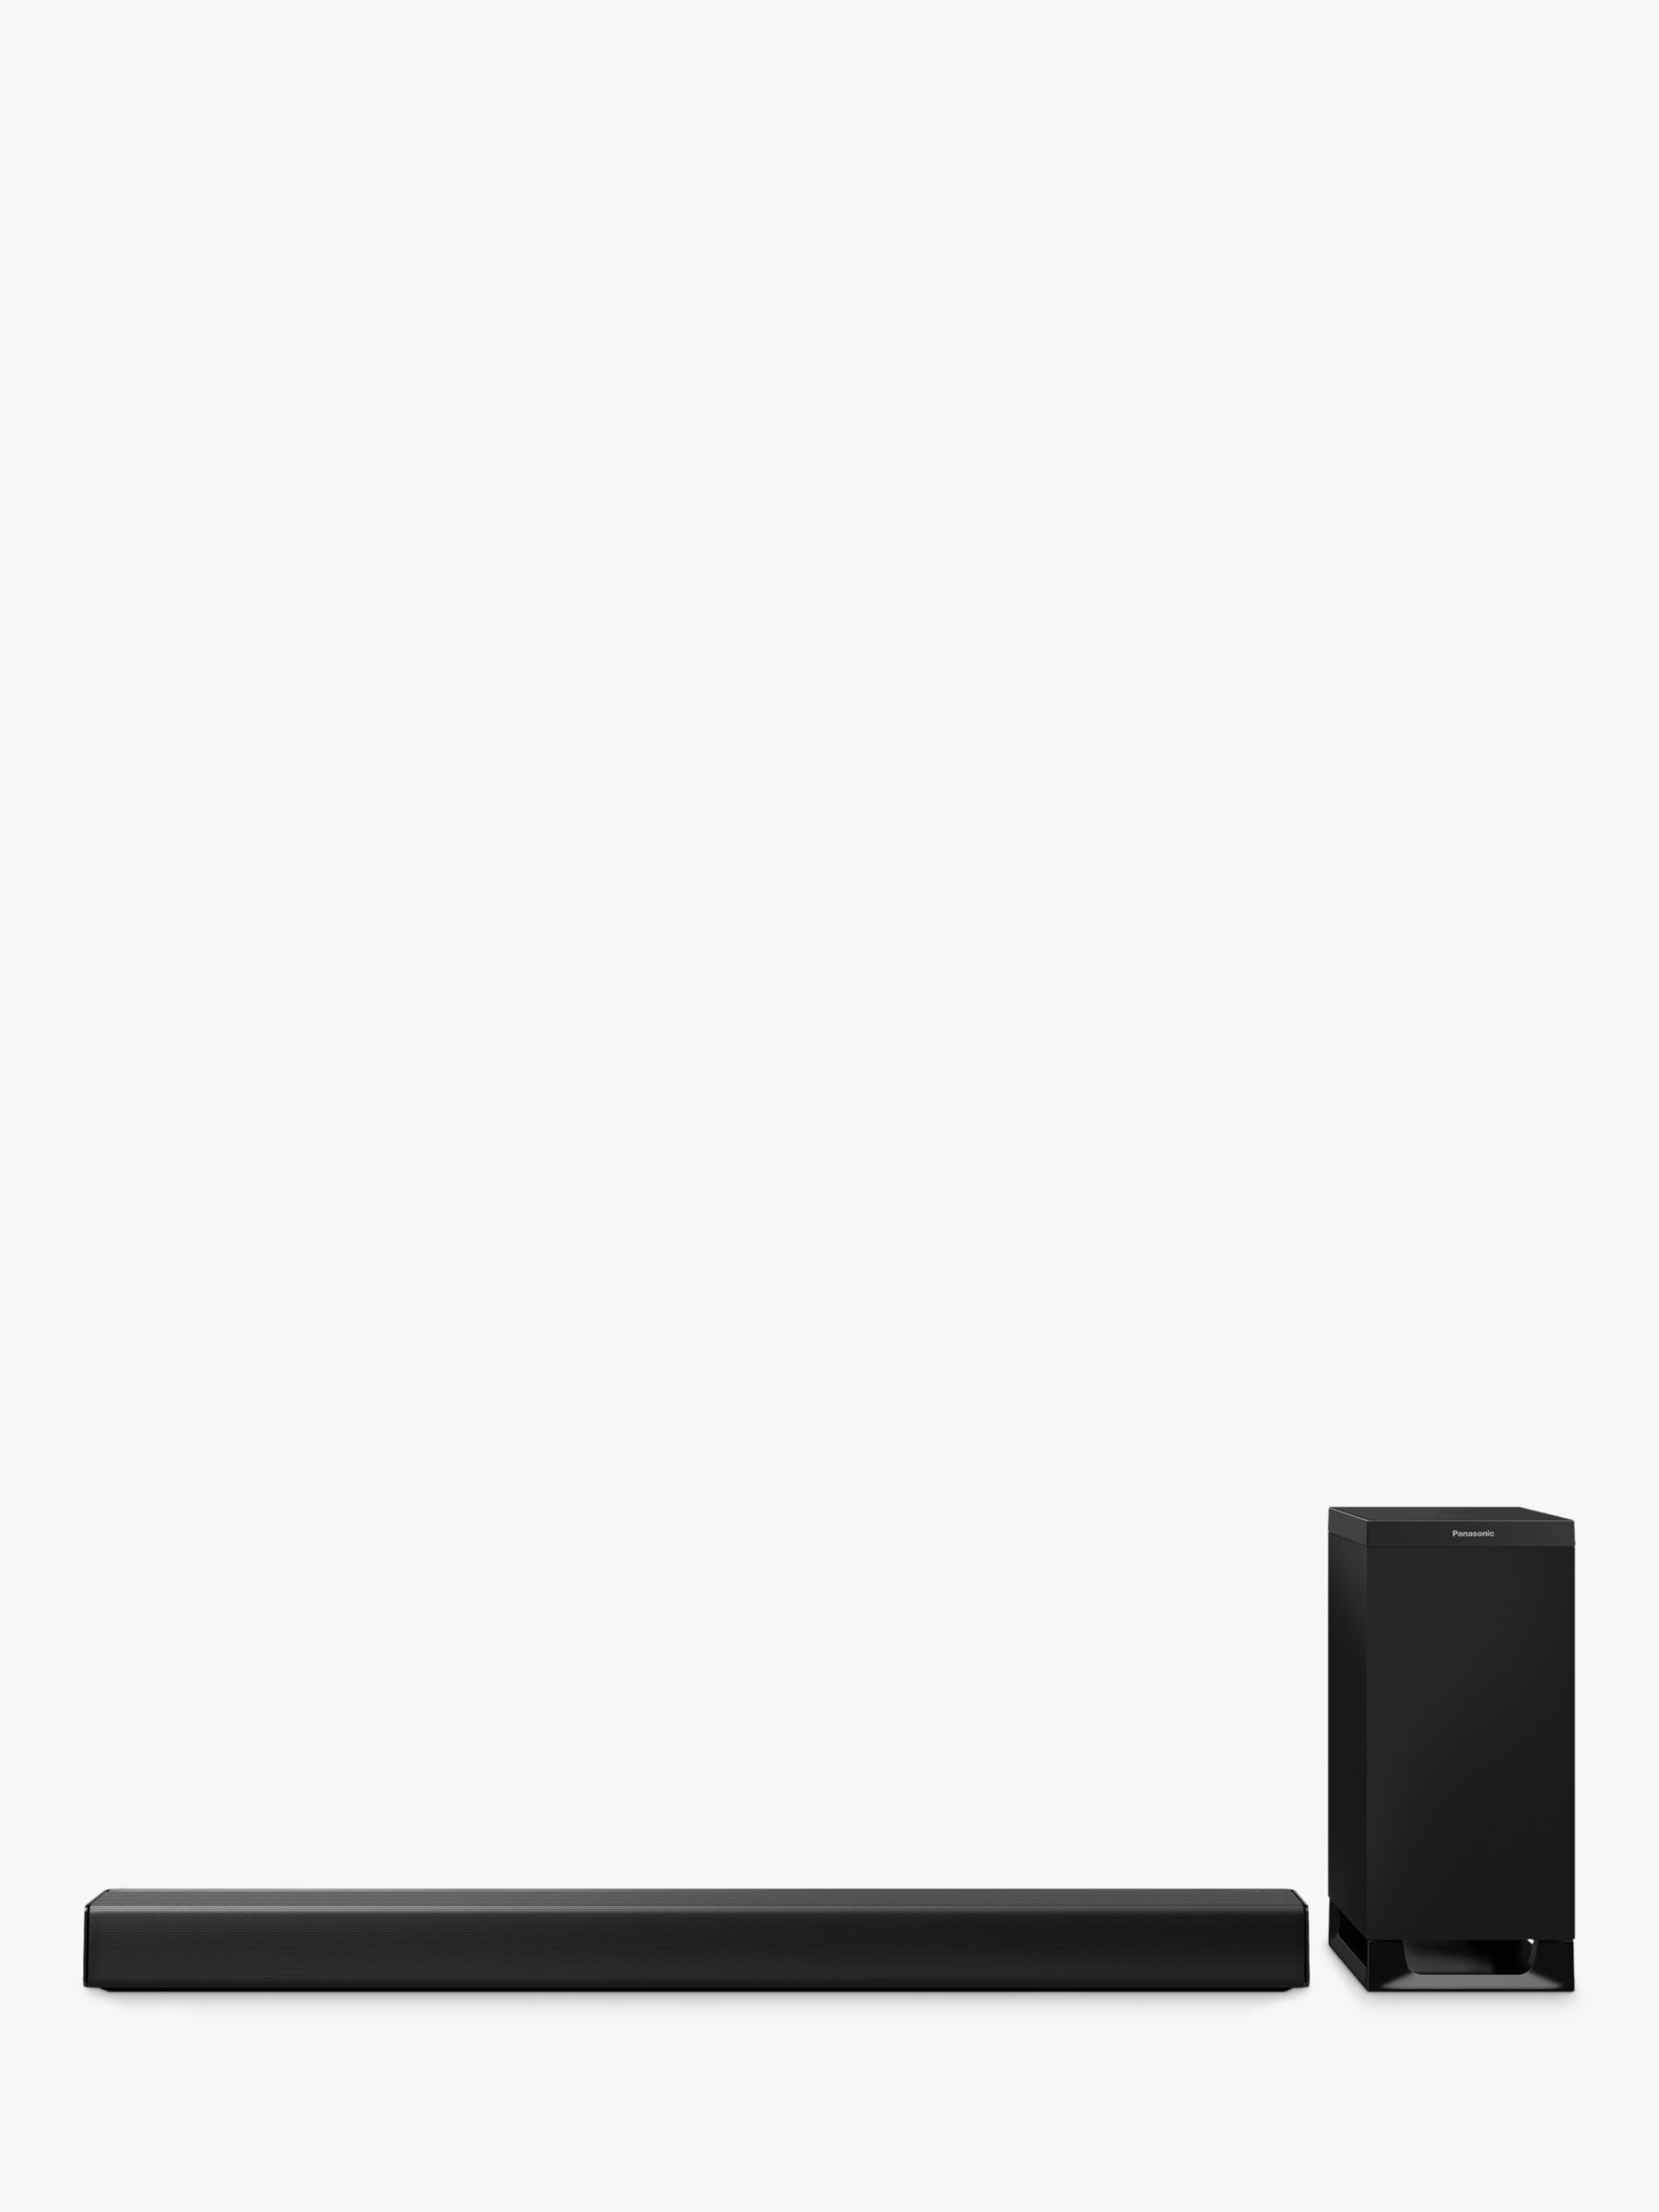 Panasonic Panasonic SC-HTB900 Bluetooth Wi-Fi Sound Bar with Dolby Atmos / DTS:X, Chromecast Built-In & Wireless Subwoofer